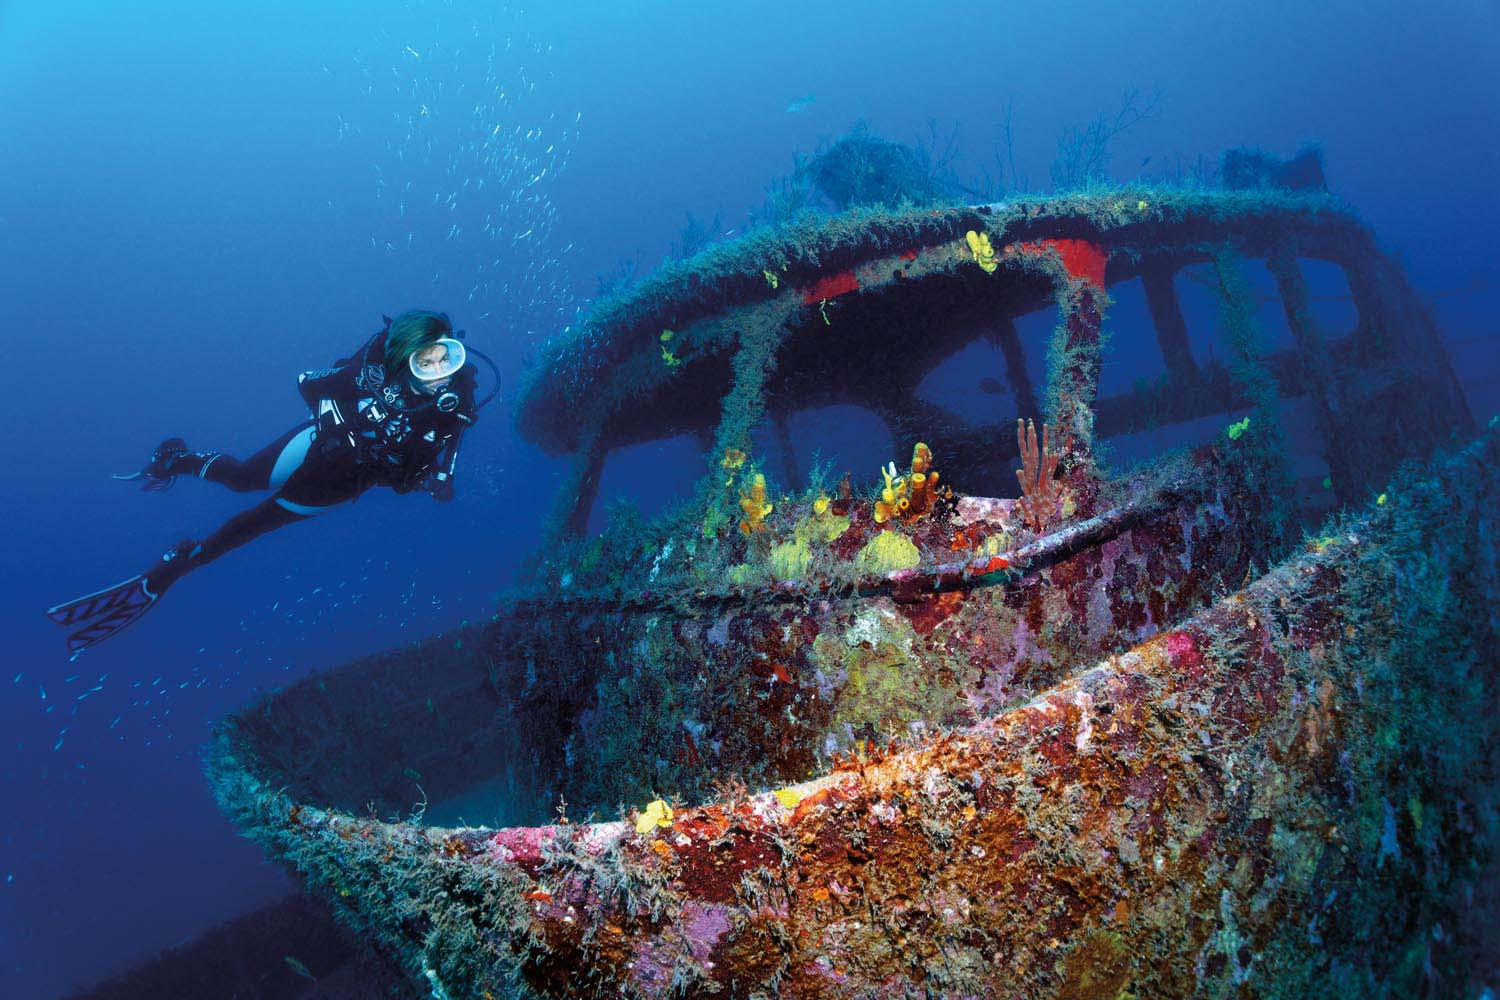 Exploring a small wreck off Speyside. Photo by Imagebroker/Alamy Stock Photo